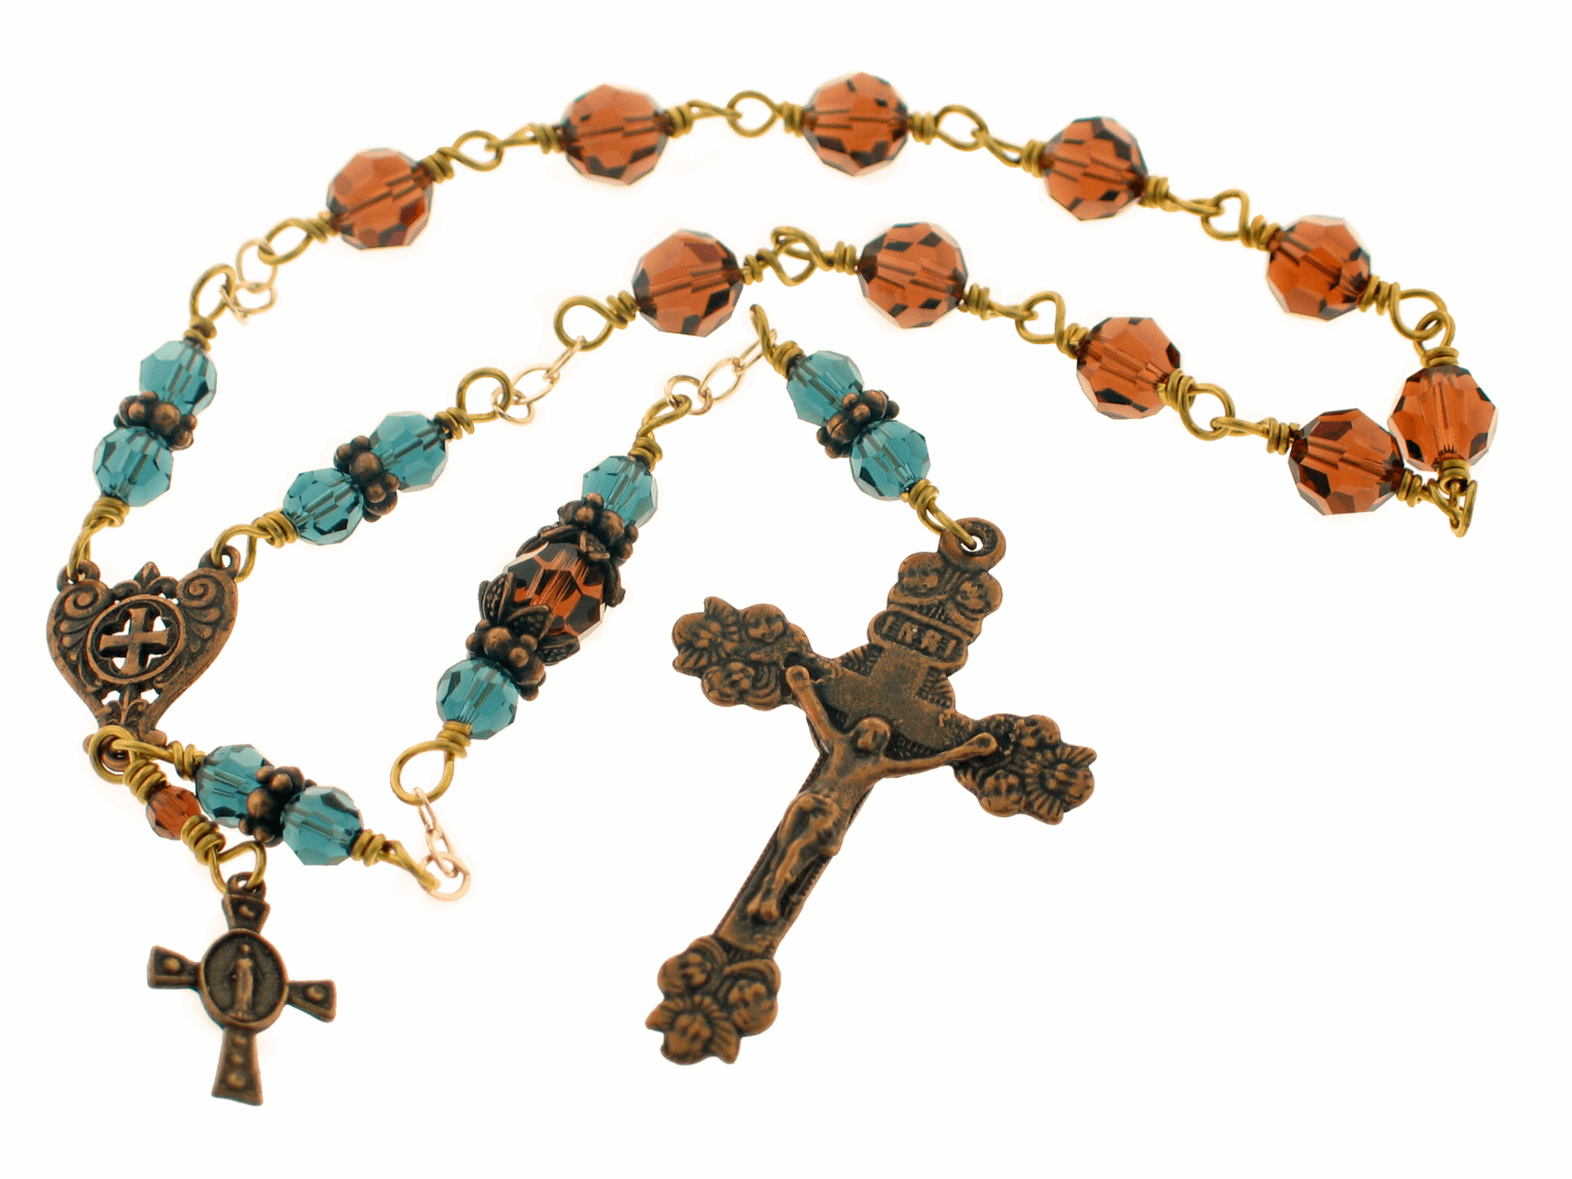 Handmade Bronze Angel Swarovski Crystal Decade Pocket Rosary